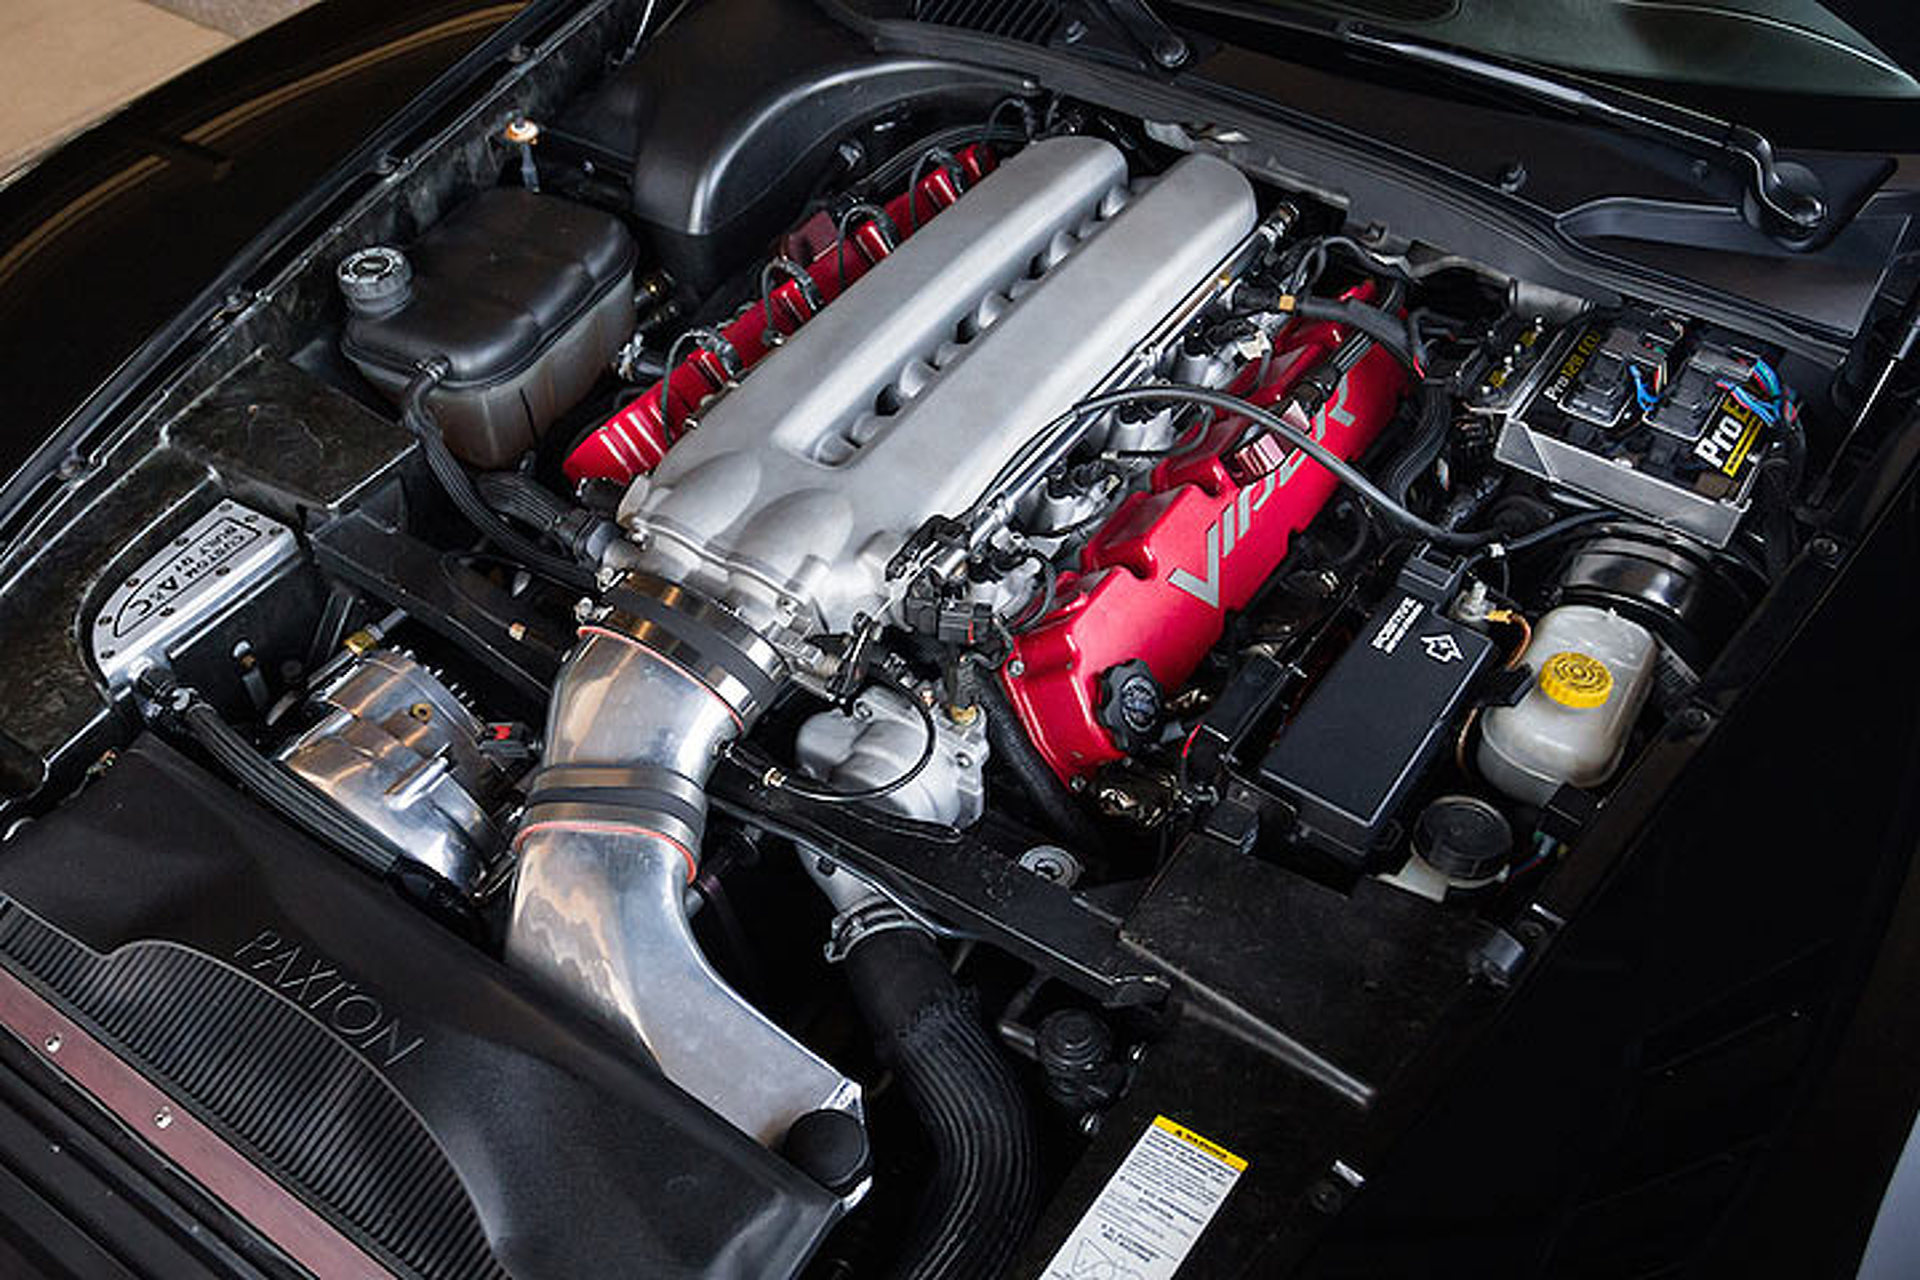 This Dodge Viper Packs 1,000 HP and Looks the Part Too